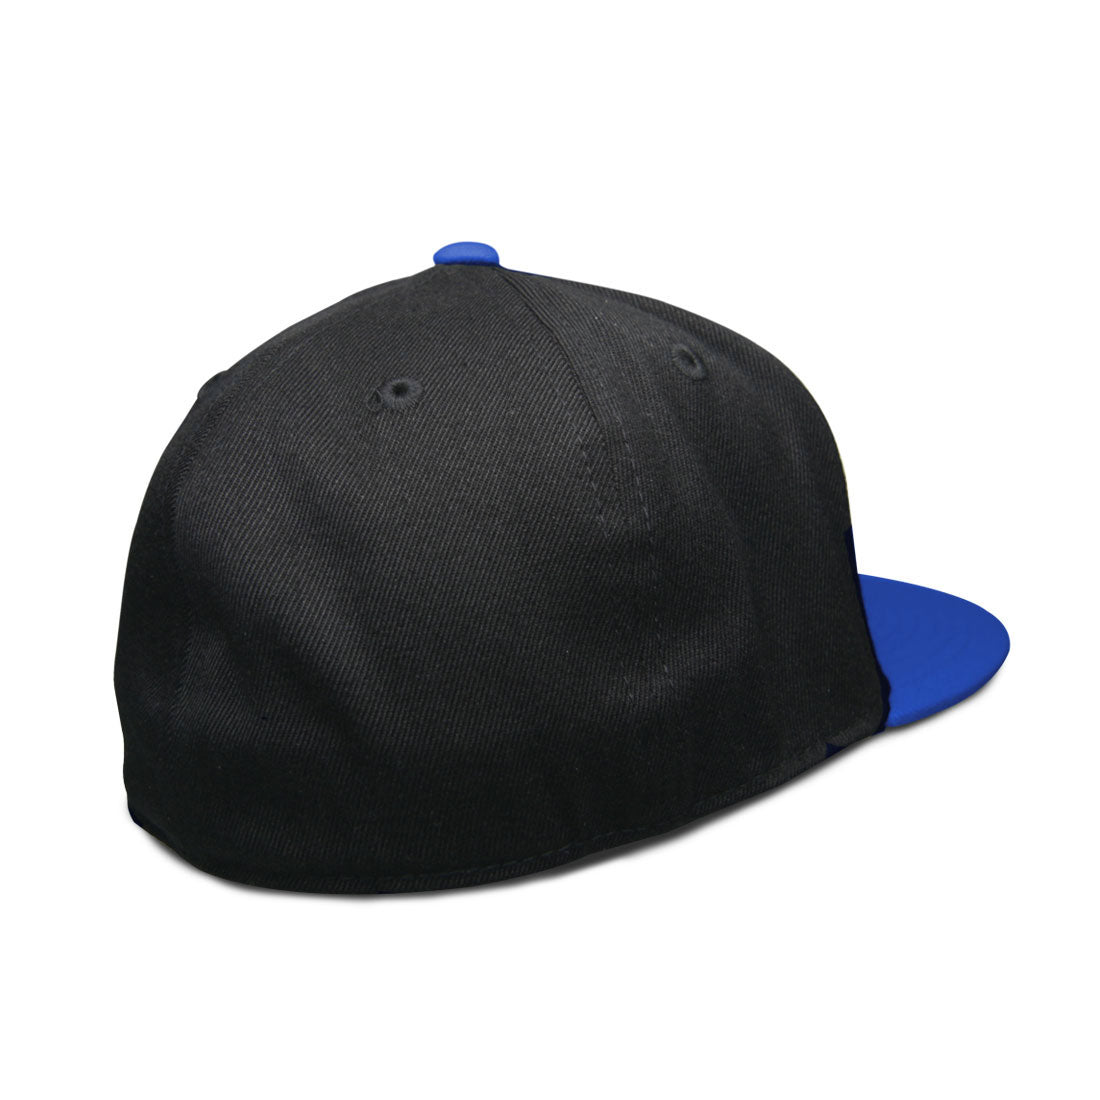 RIZNWILD | Fitted hat back view royal/black